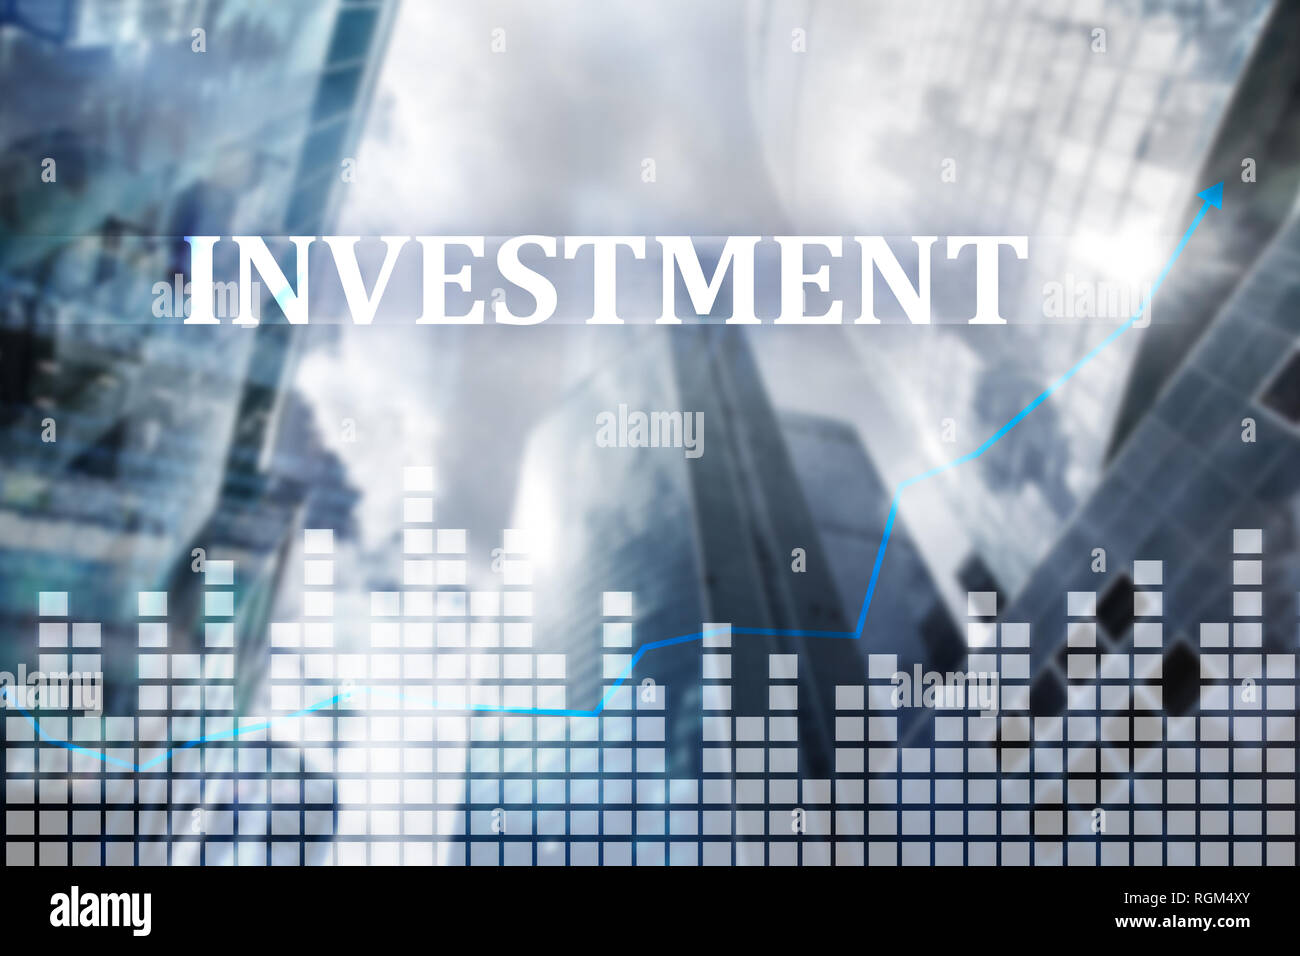 Investment, ROI, financial market concept. Business people - Stock Image